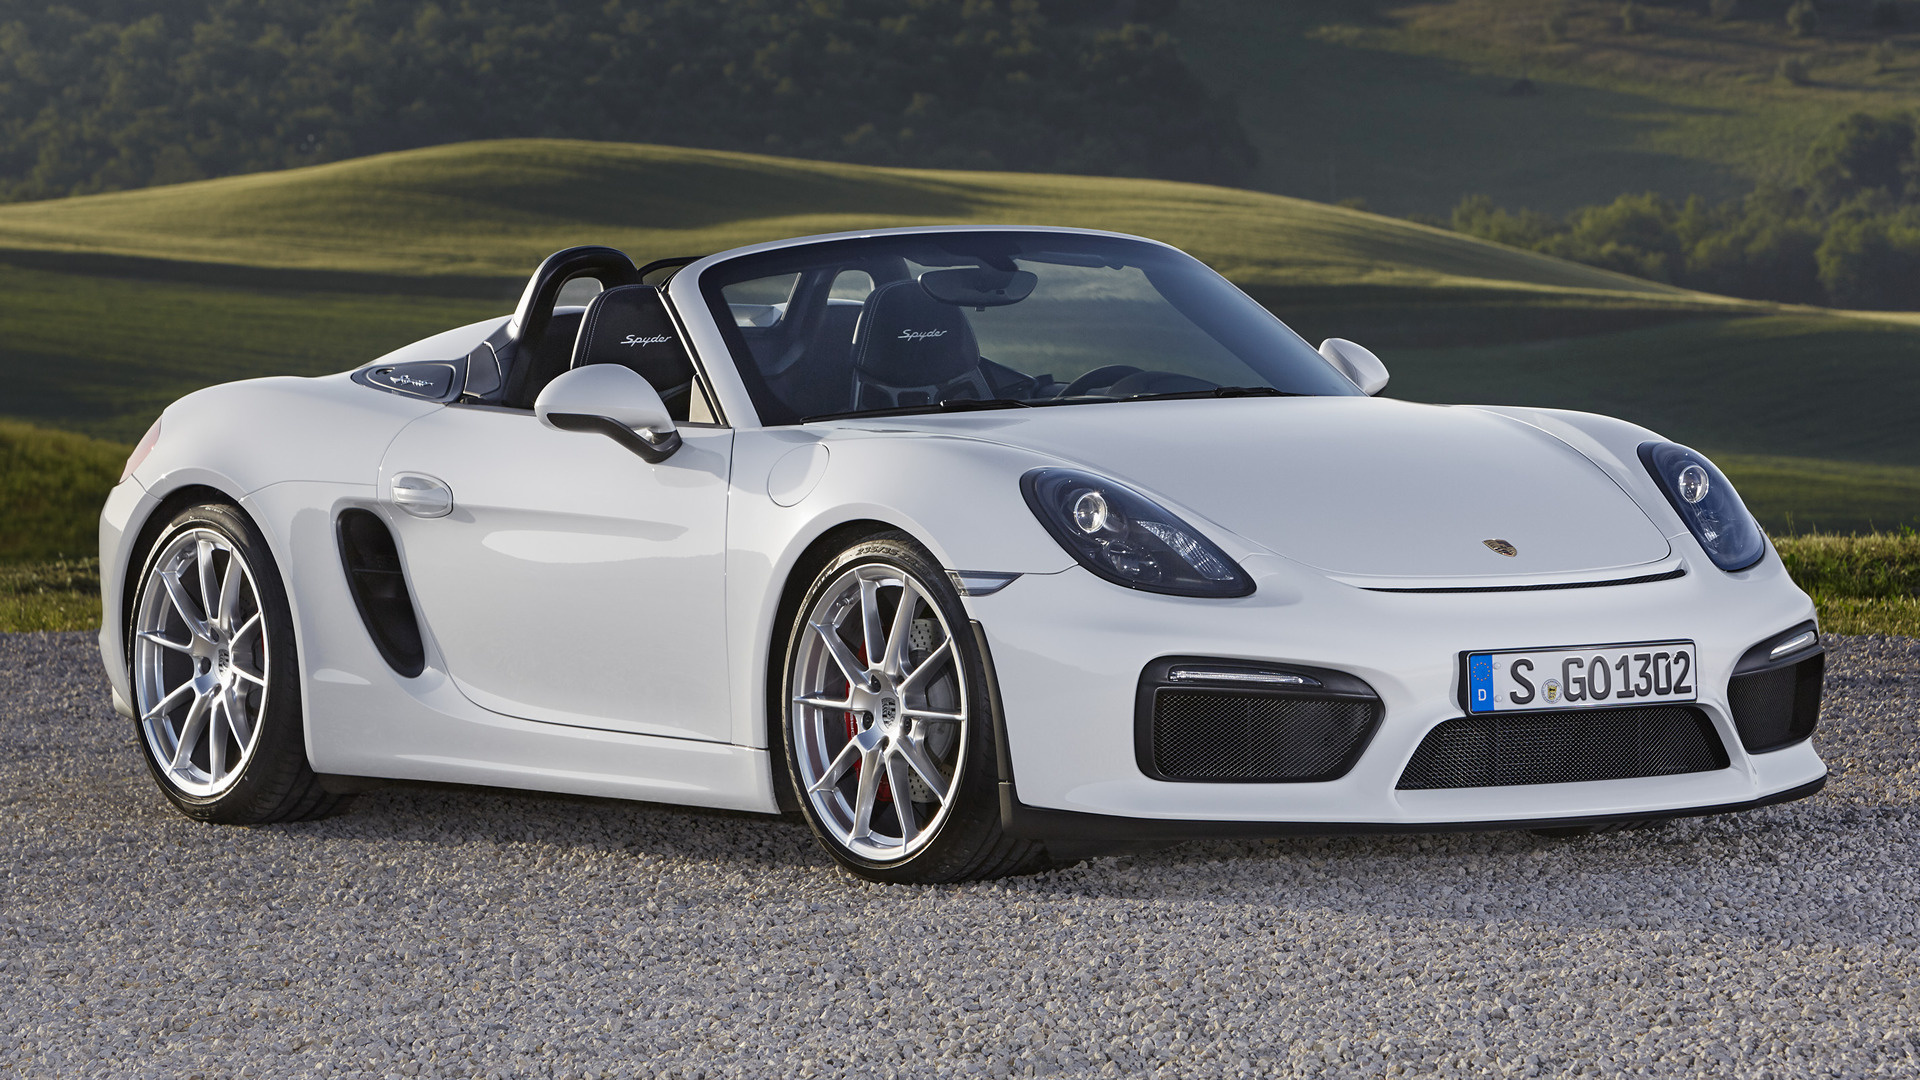 2015 Porsche Boxster Spyder Wallpapers And Hd Images